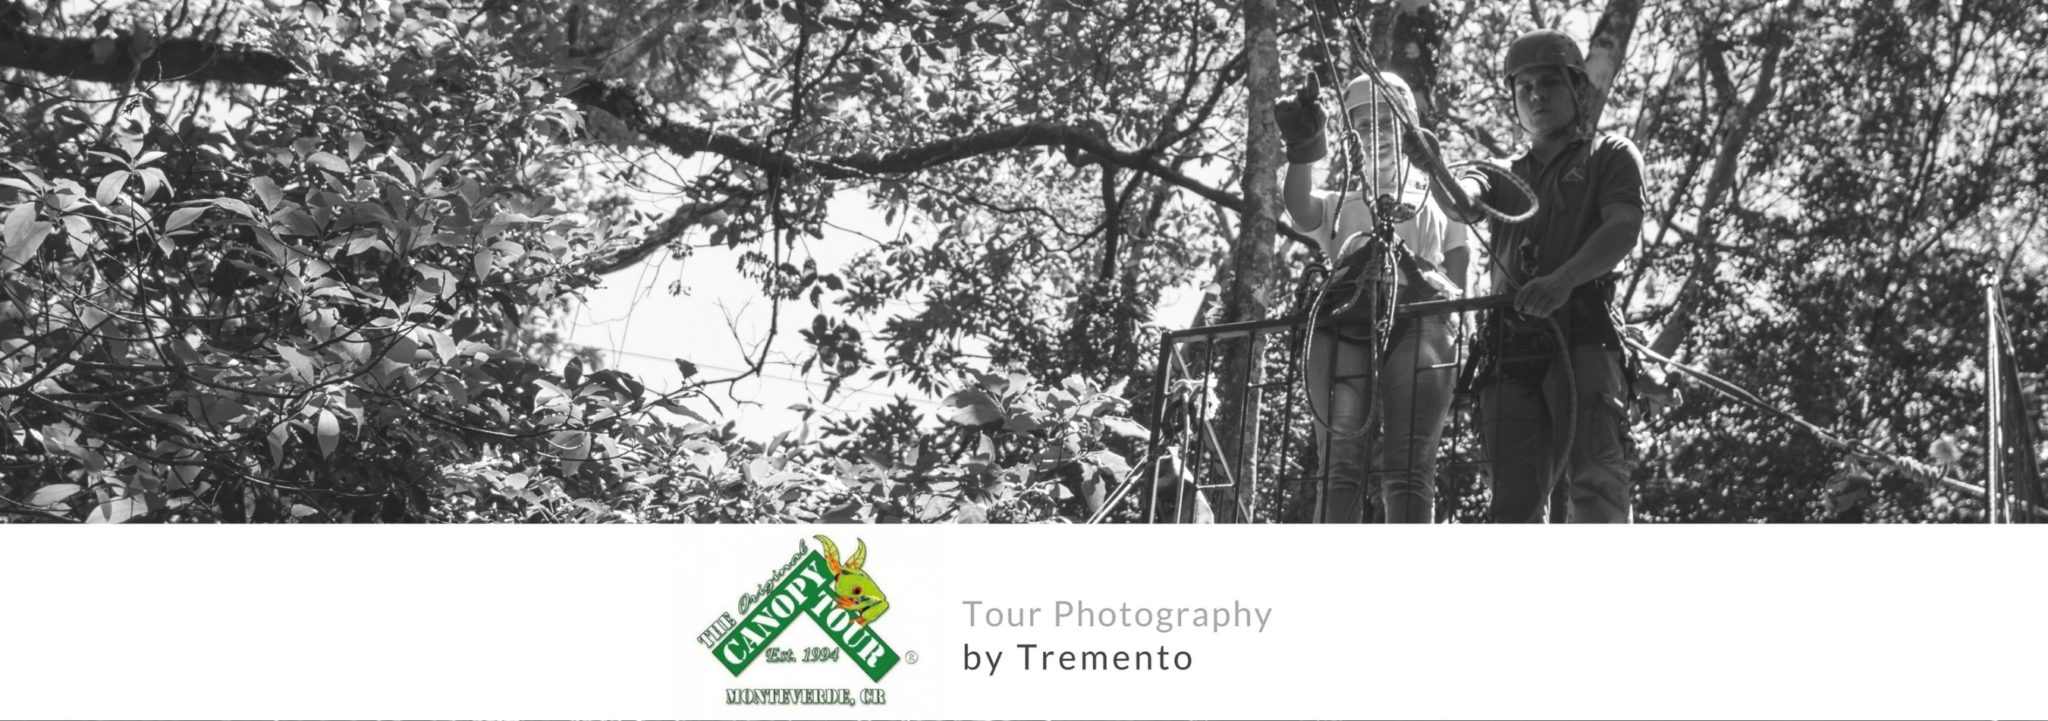 The Original Canopy Tour - Tour photography - Hospitality Marketing and Advertising